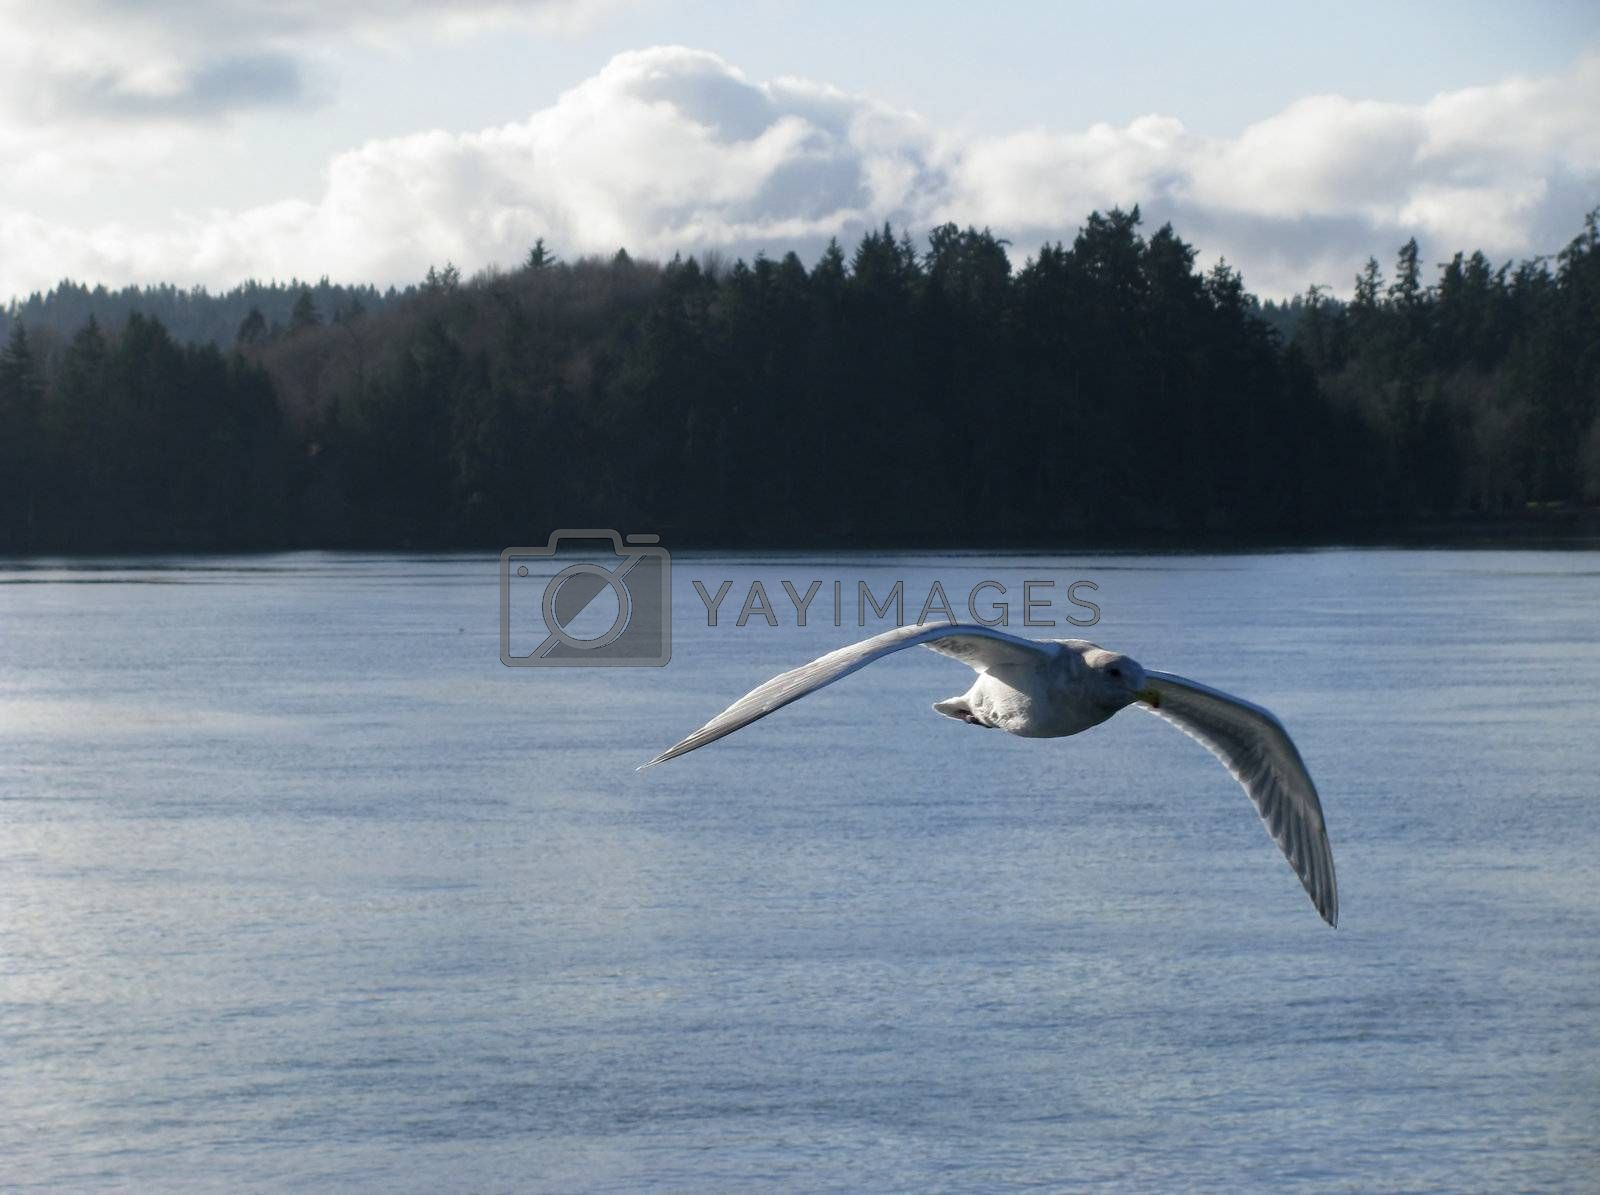 Wings of Freedom by mwp1969